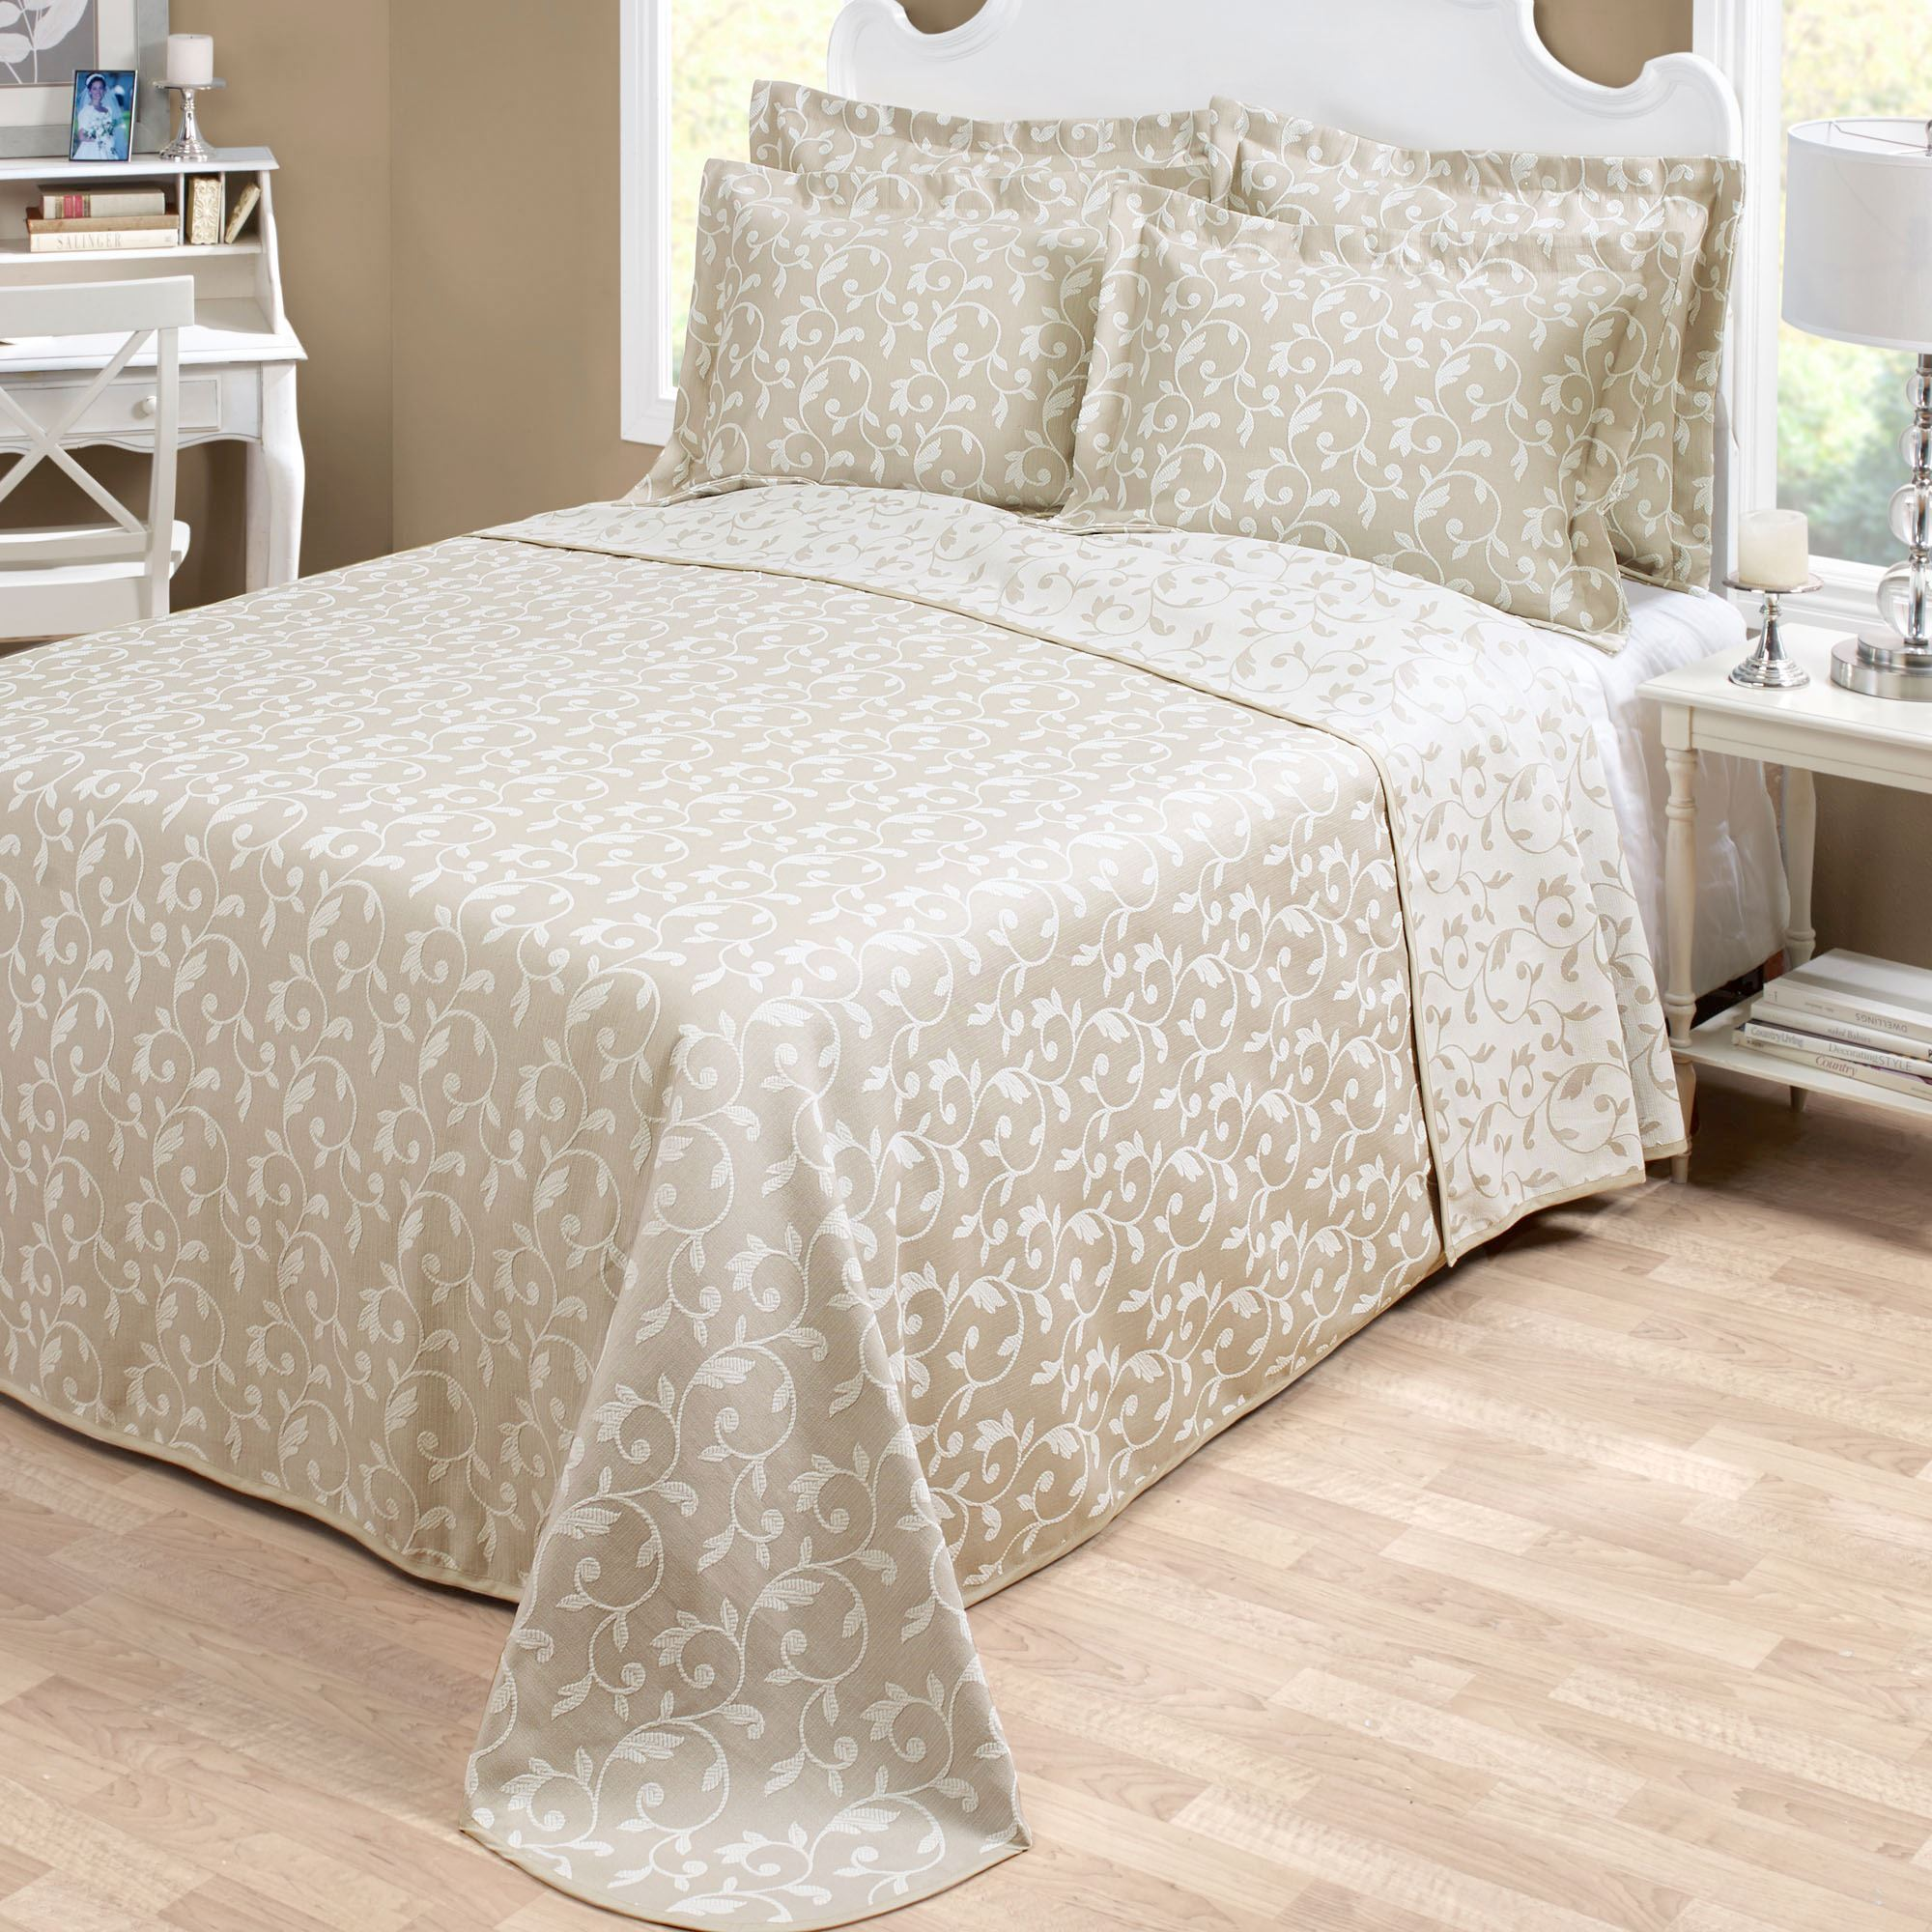 charles matelasse product free bedspread overstock king bedding bed today historic bath shipping charleston